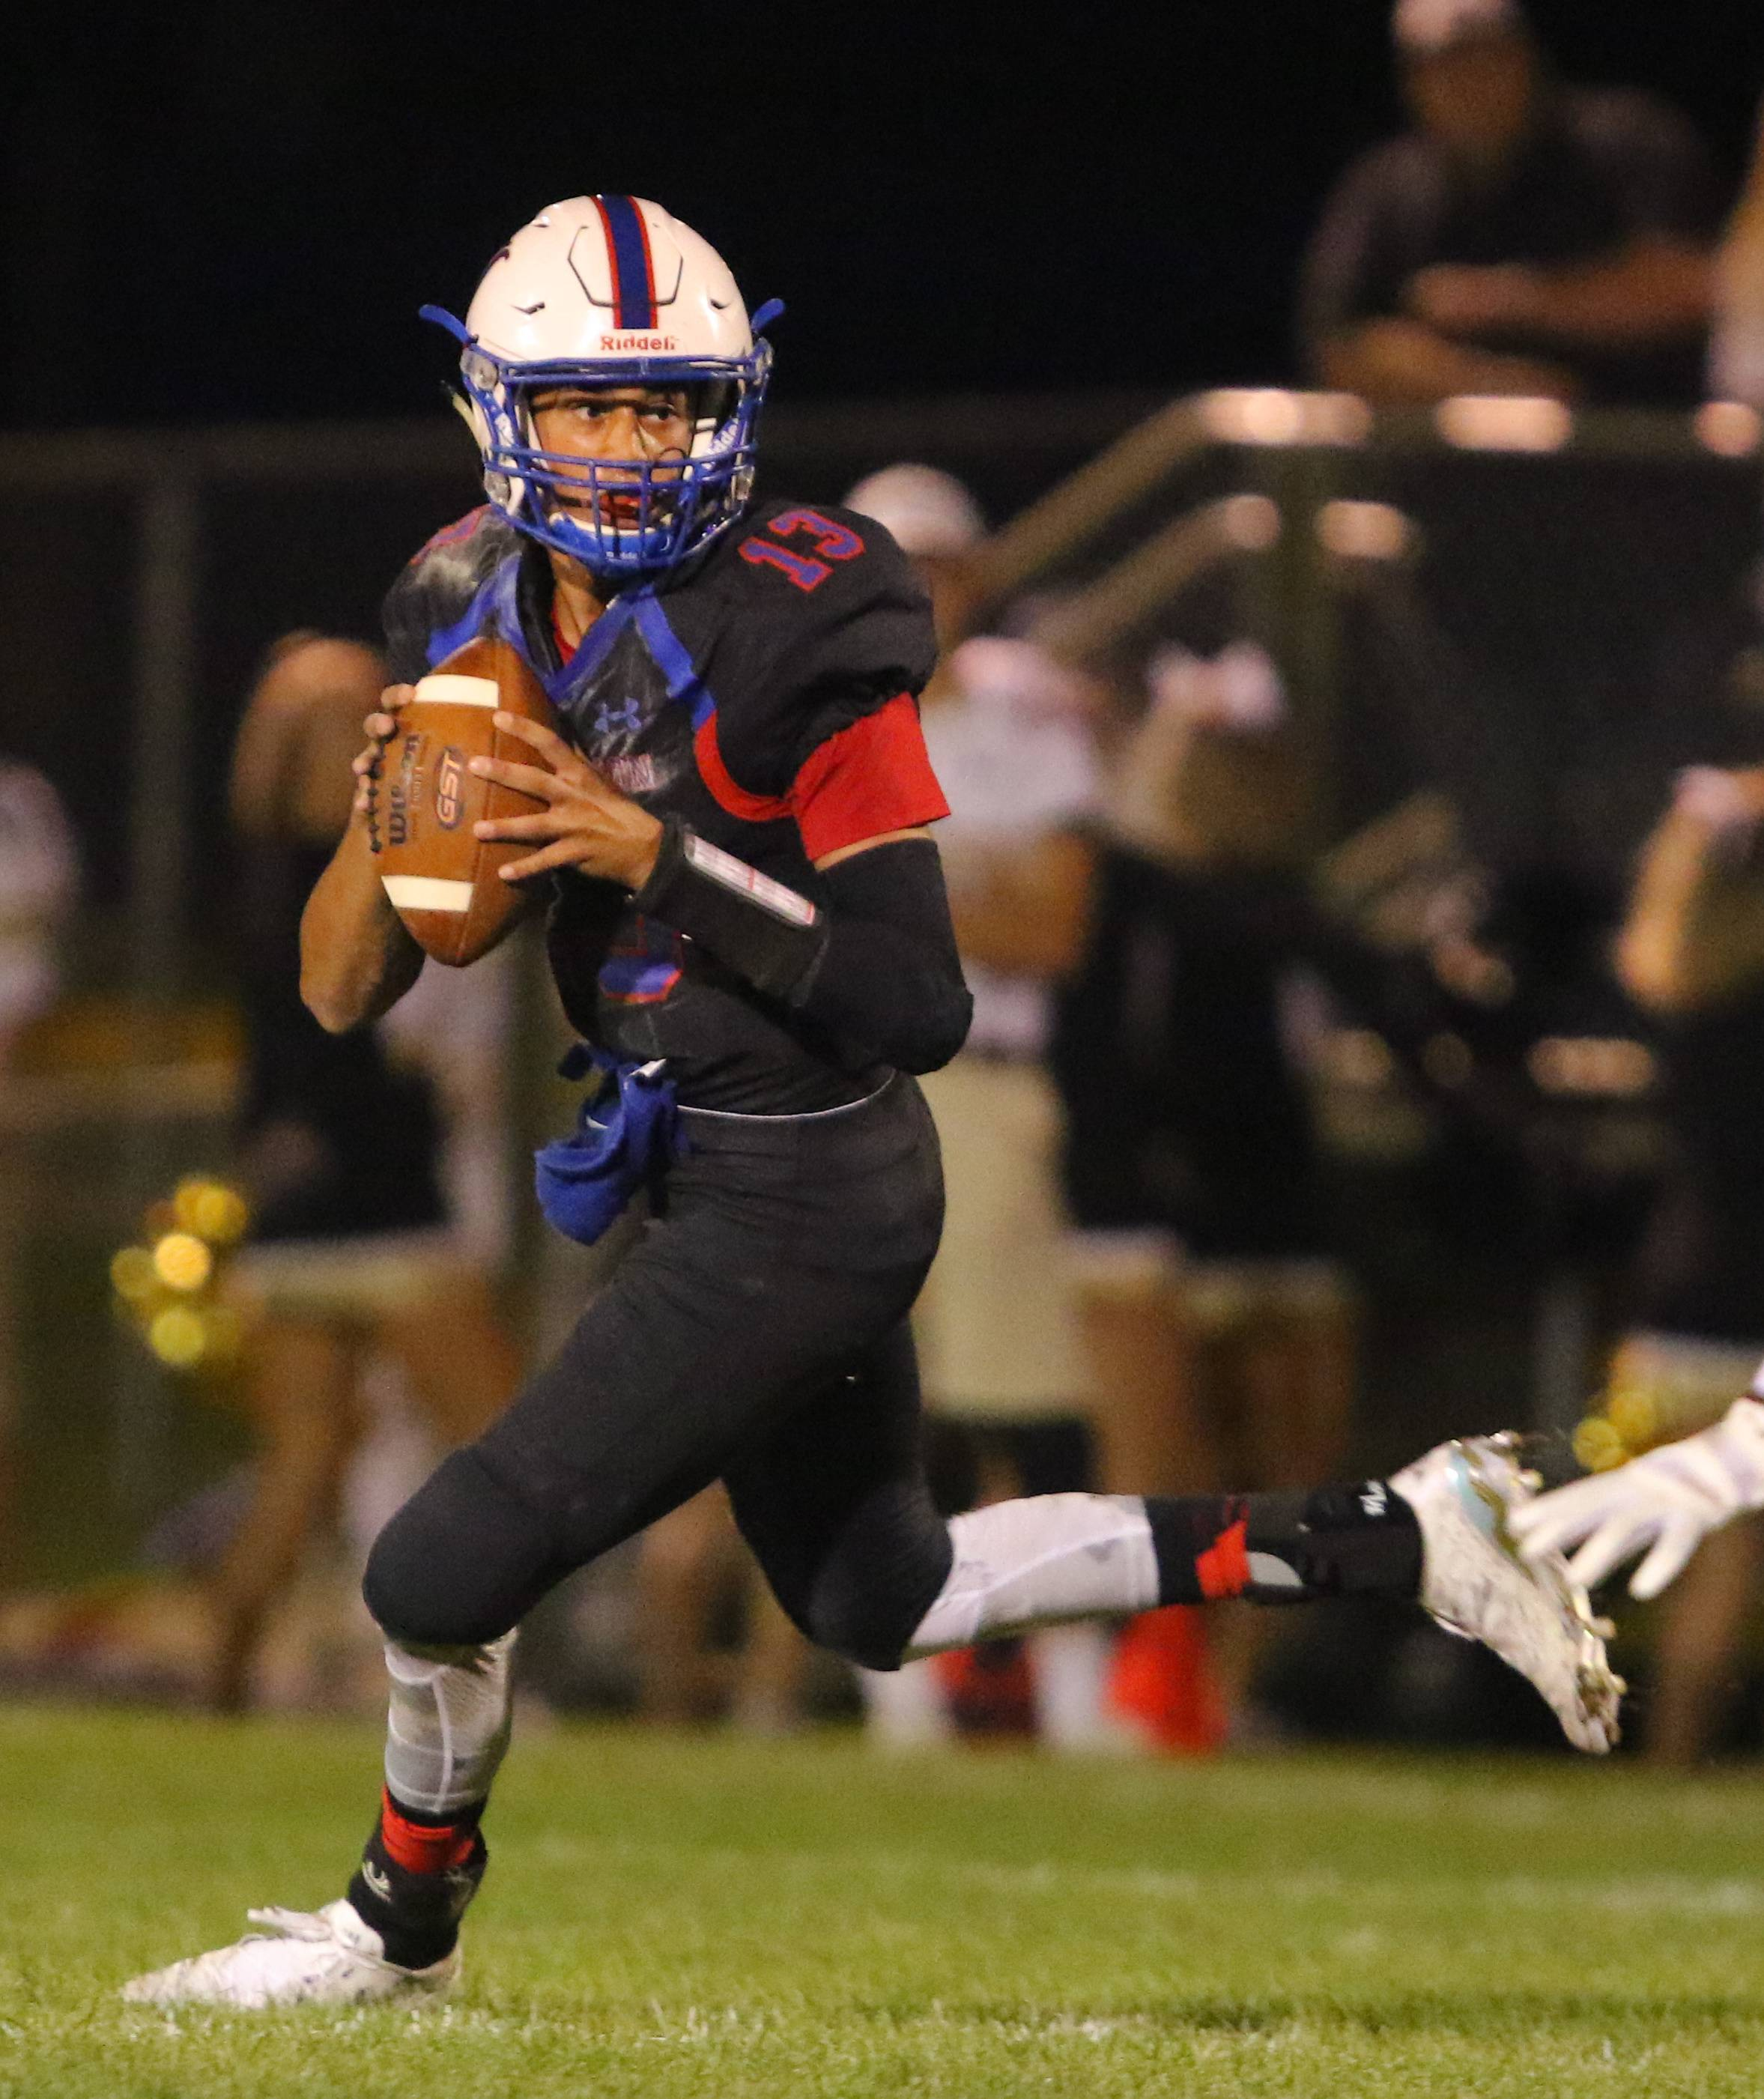 Lakes quarterback Brandon Khan and his teammates host Grayslake Central on Friday night. It will be a military appreciation event called Troop Dreams.